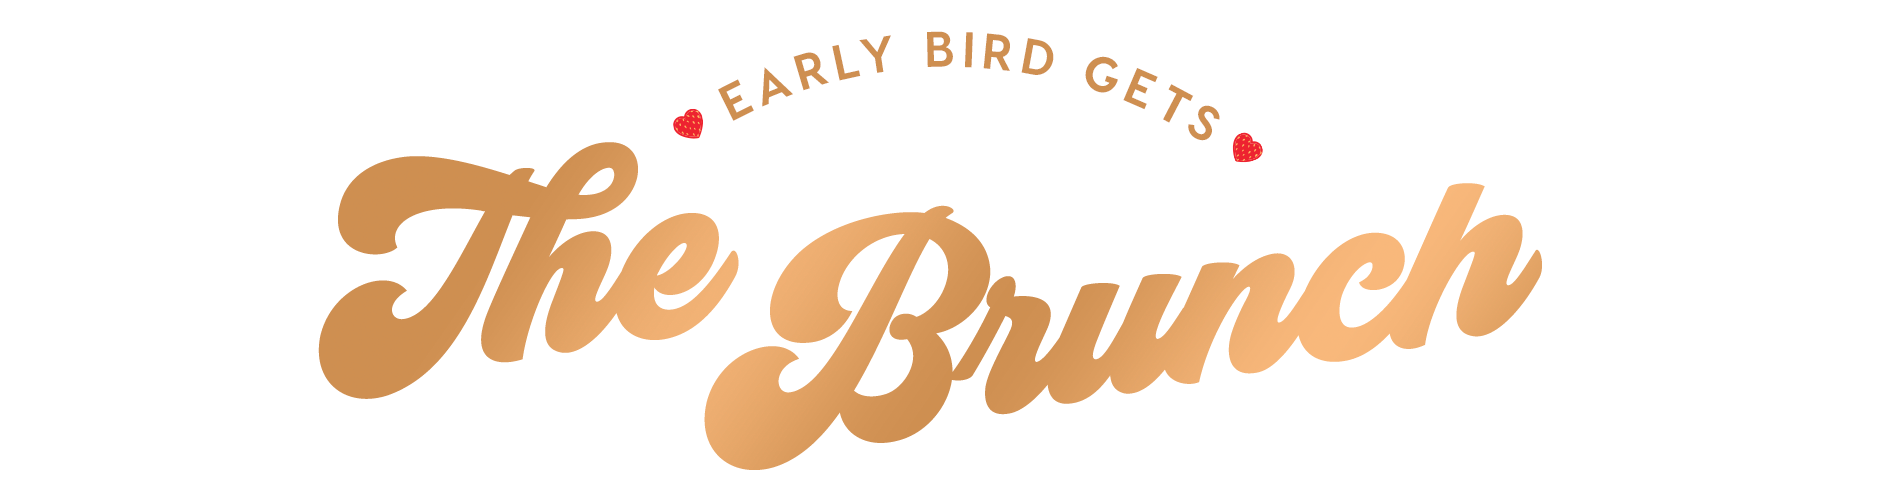 Early bird gets the Brunch